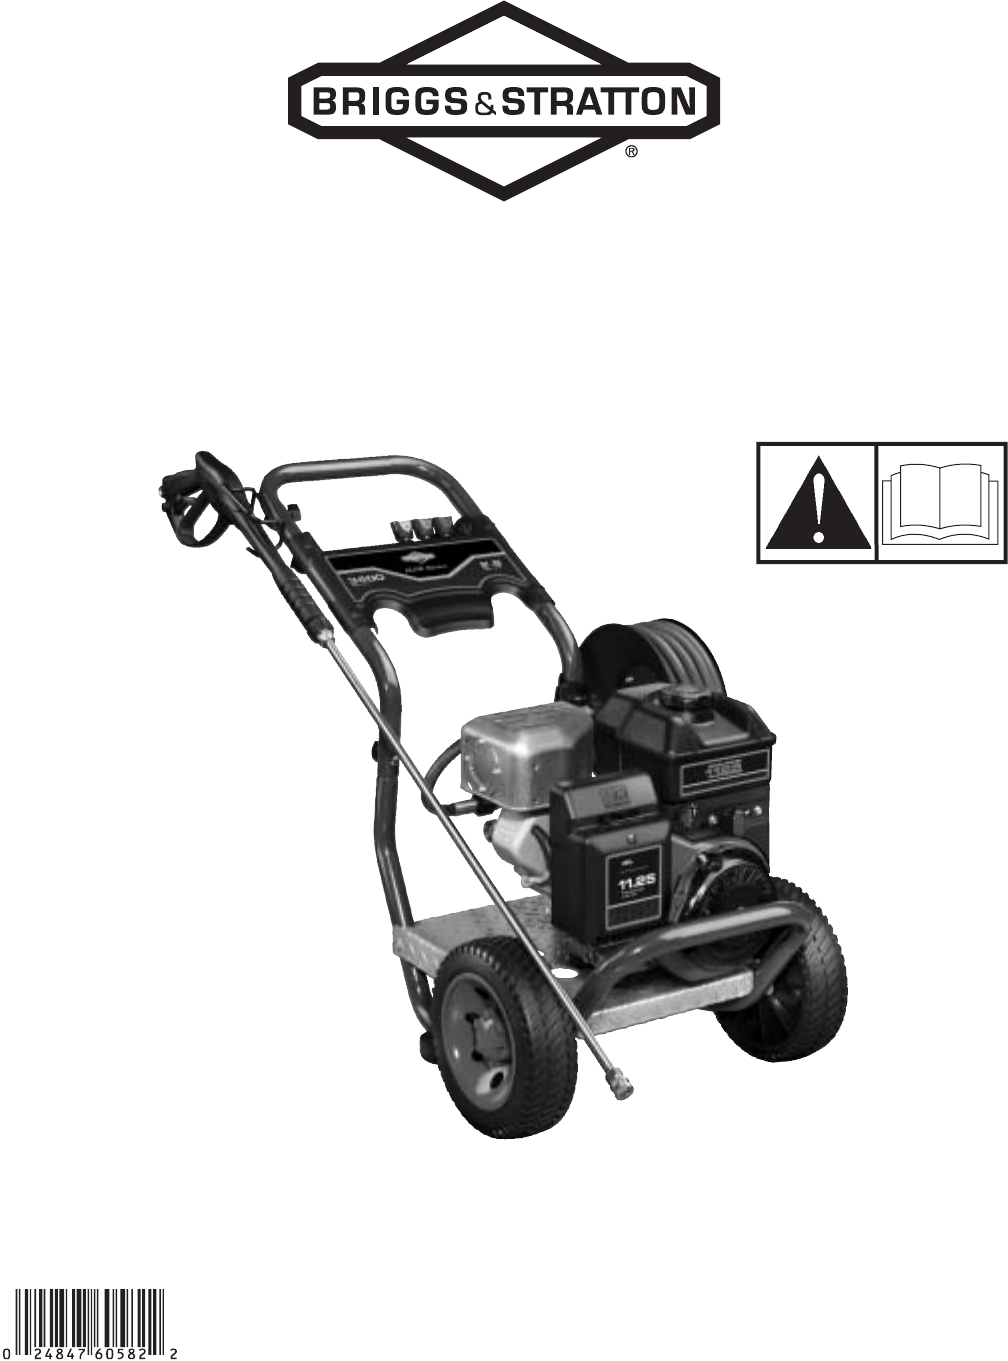 Briggs & Stratton Pressure Washer 020364-0 User Guide